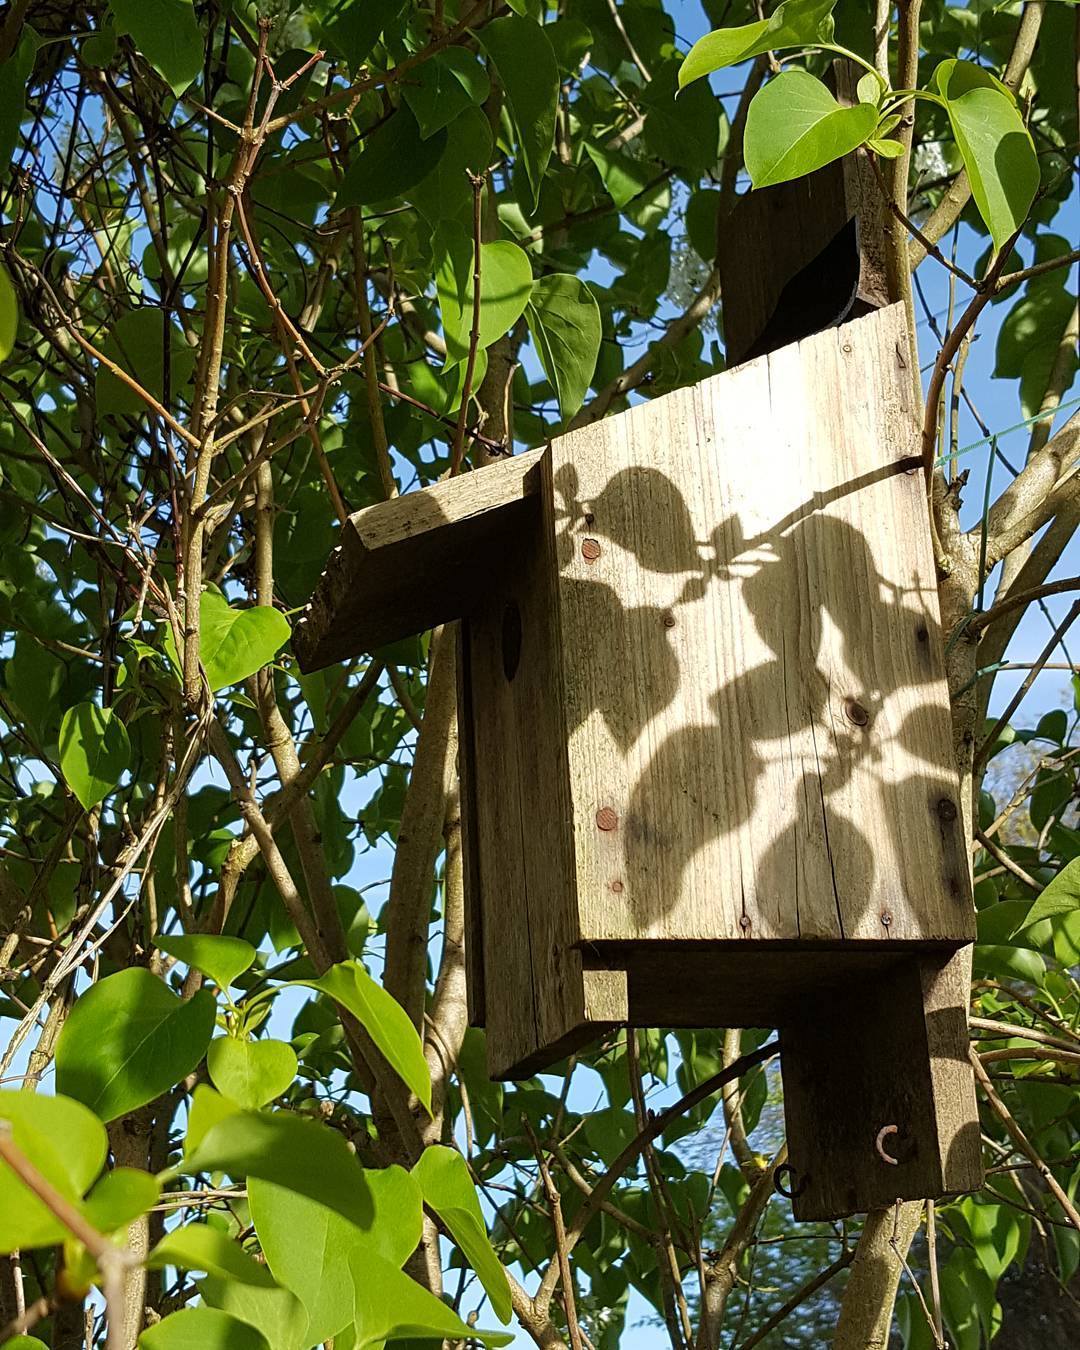 Judging from the bluetits going in this bird box withhellip